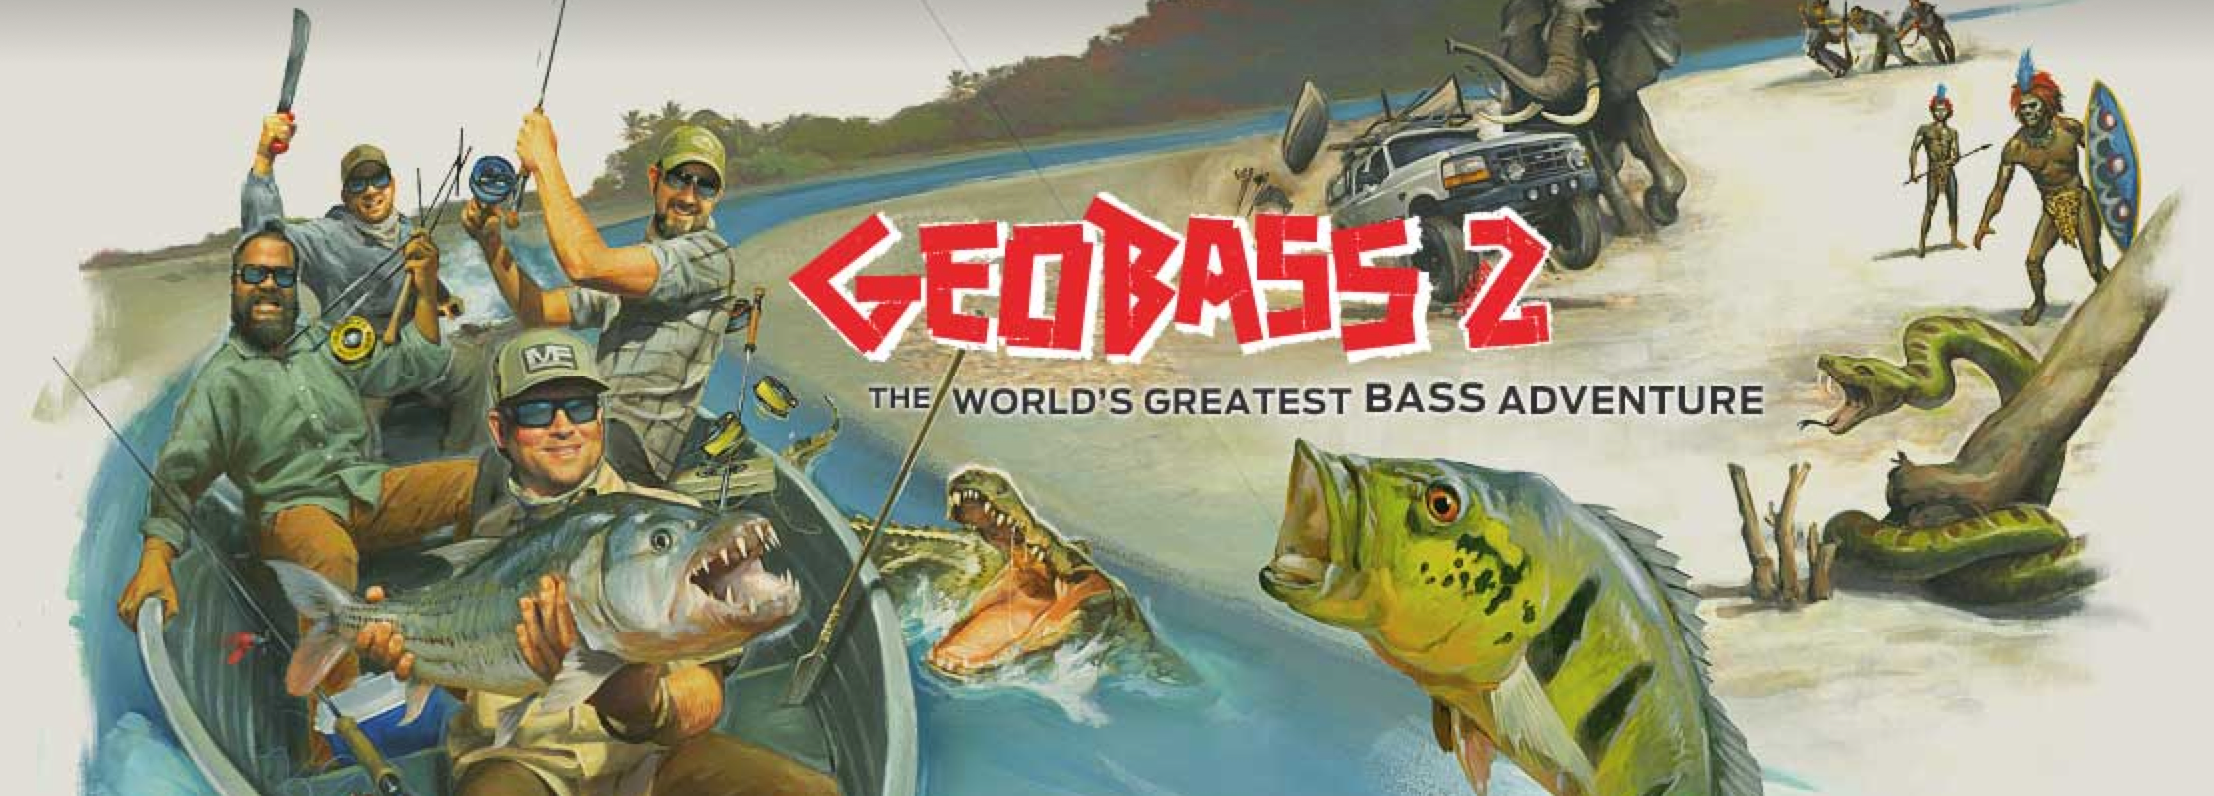 Video: Geobass Crew heads to Brazil for Peacock Bass